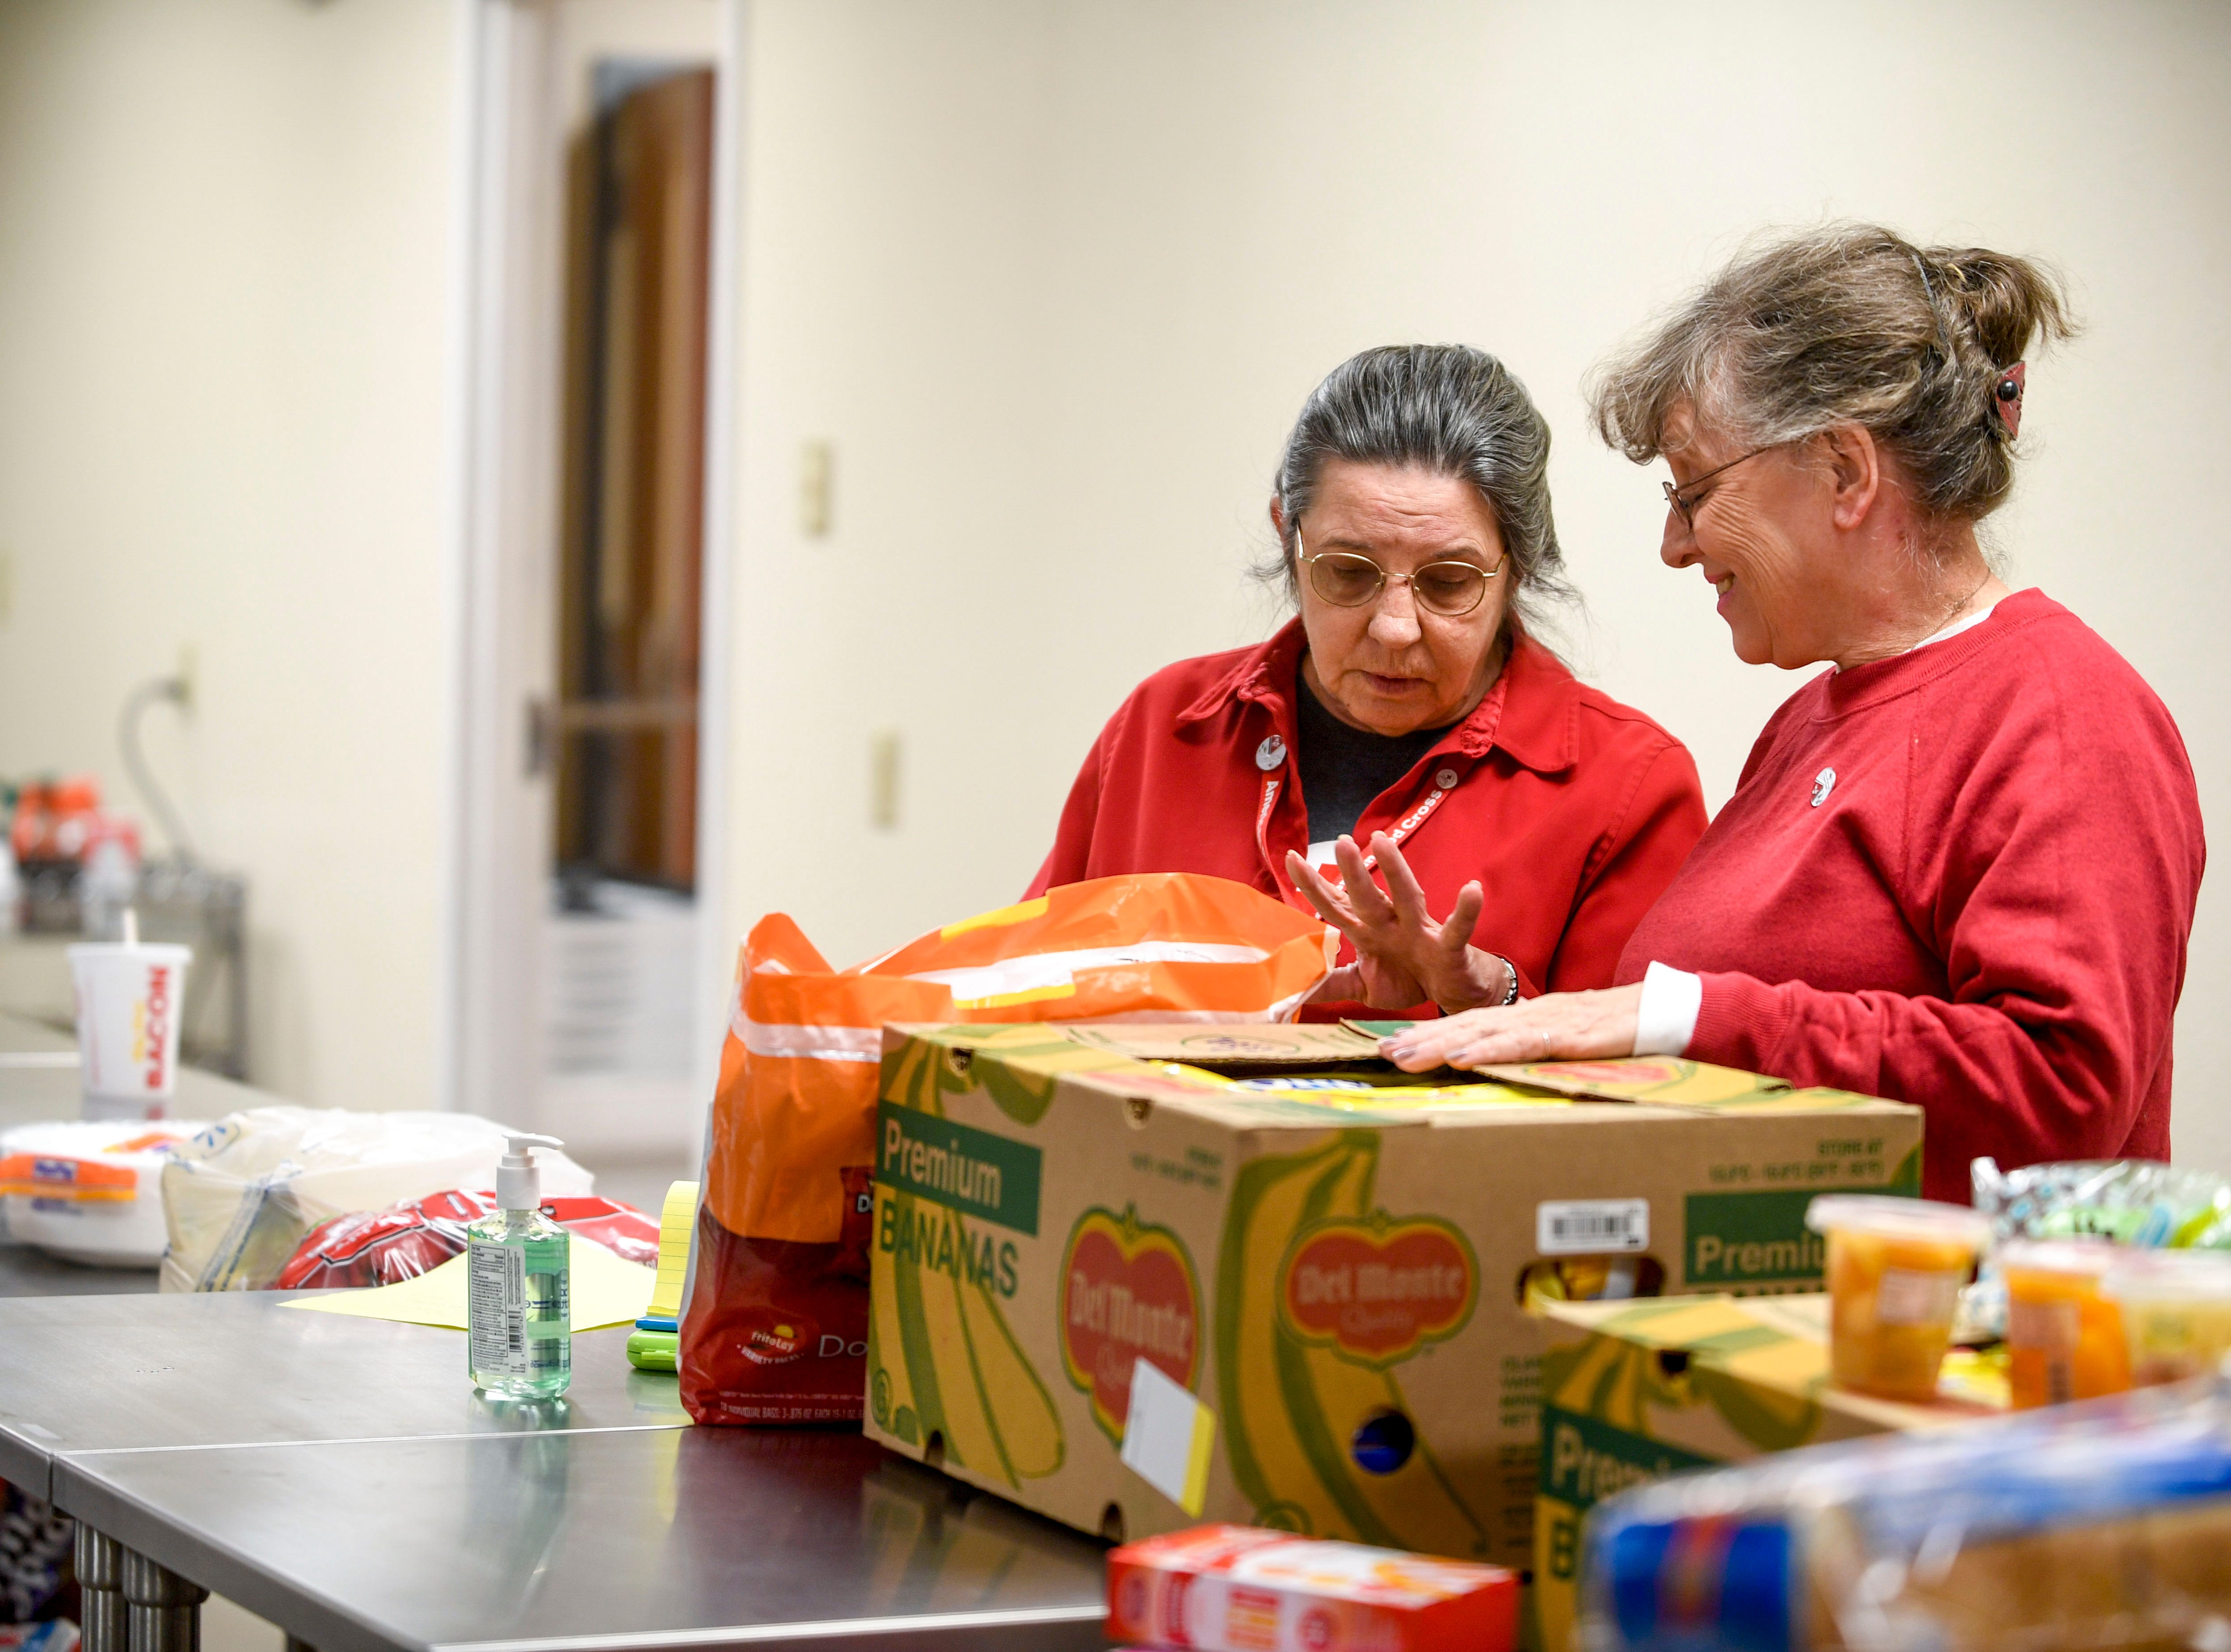 Lenora McMeekin, left, and Jackie, both volunteers with the Red Cross, take stock and make plans for use of supplies in the Red Cross station at Savannah Church of Christ, in Savannah, Tenn., on Monday, Feb. 25, 2019.